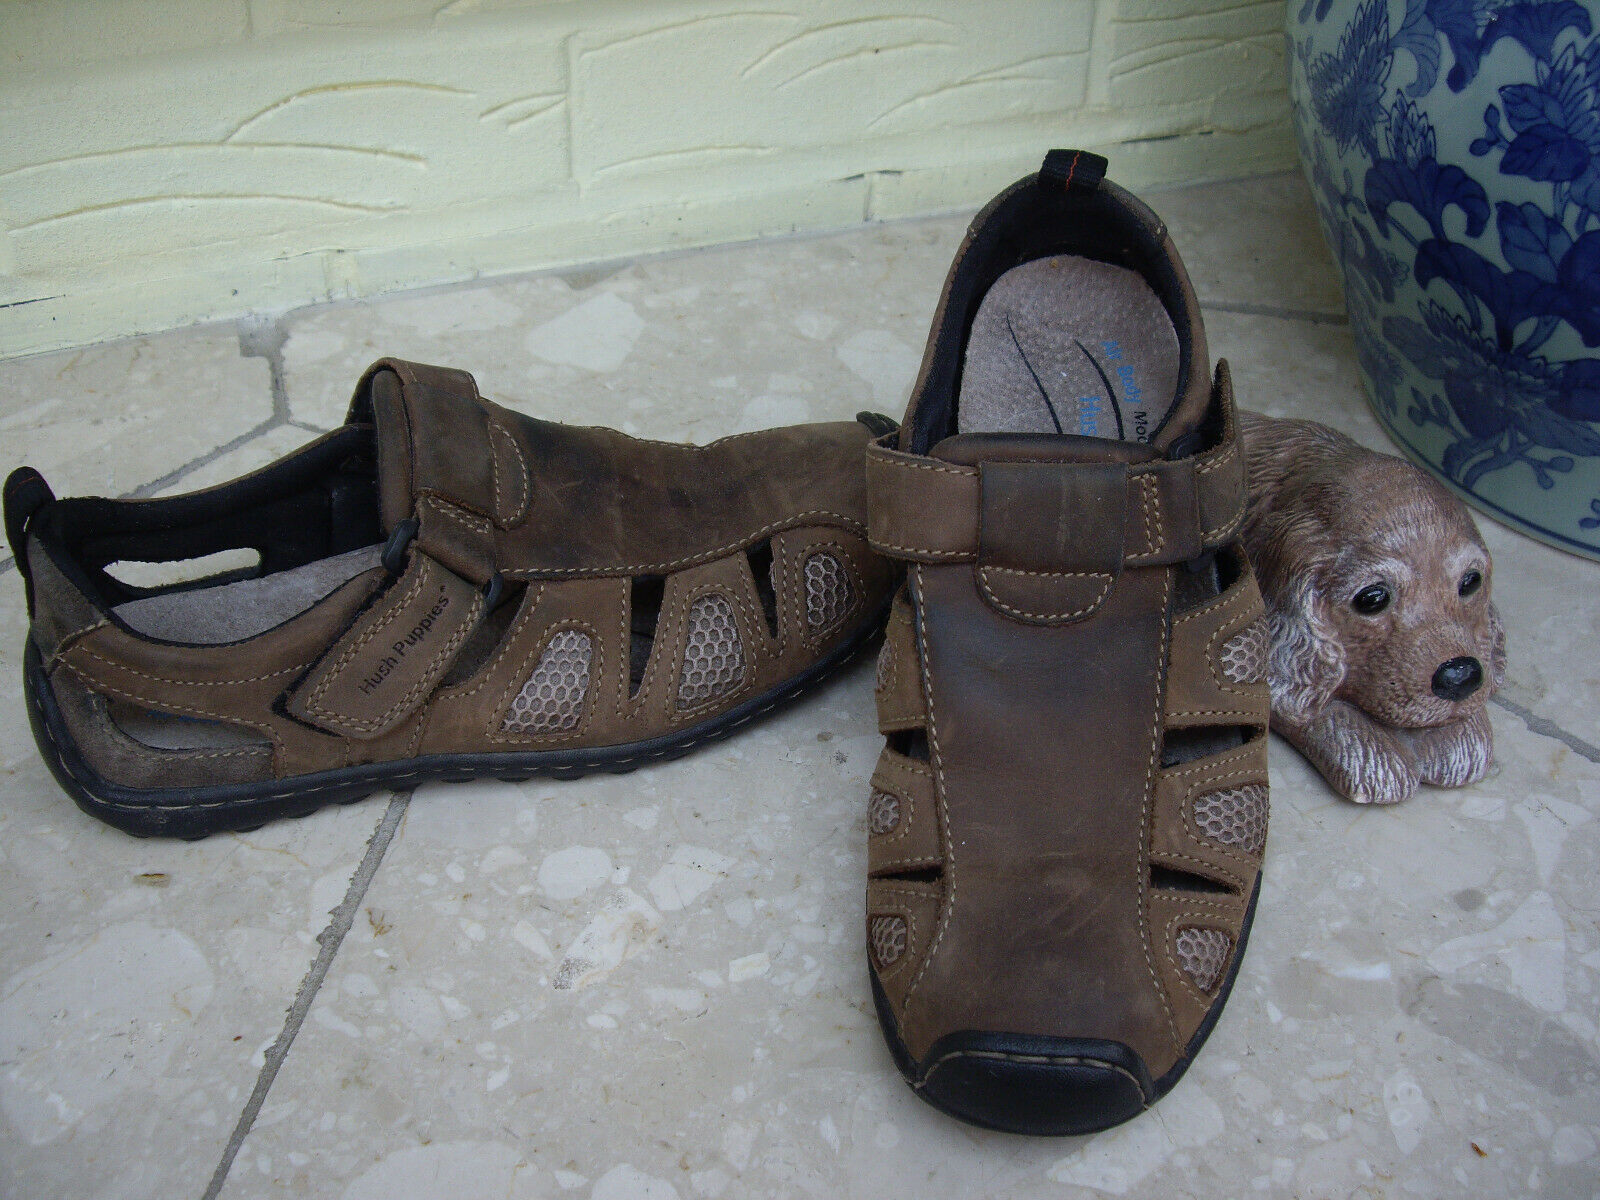 HUSH PUPPIES BROWN NUBUCK WAXED LEATHER SANDALS HUSH PUPPIES FISHERMEN SANDALS 6